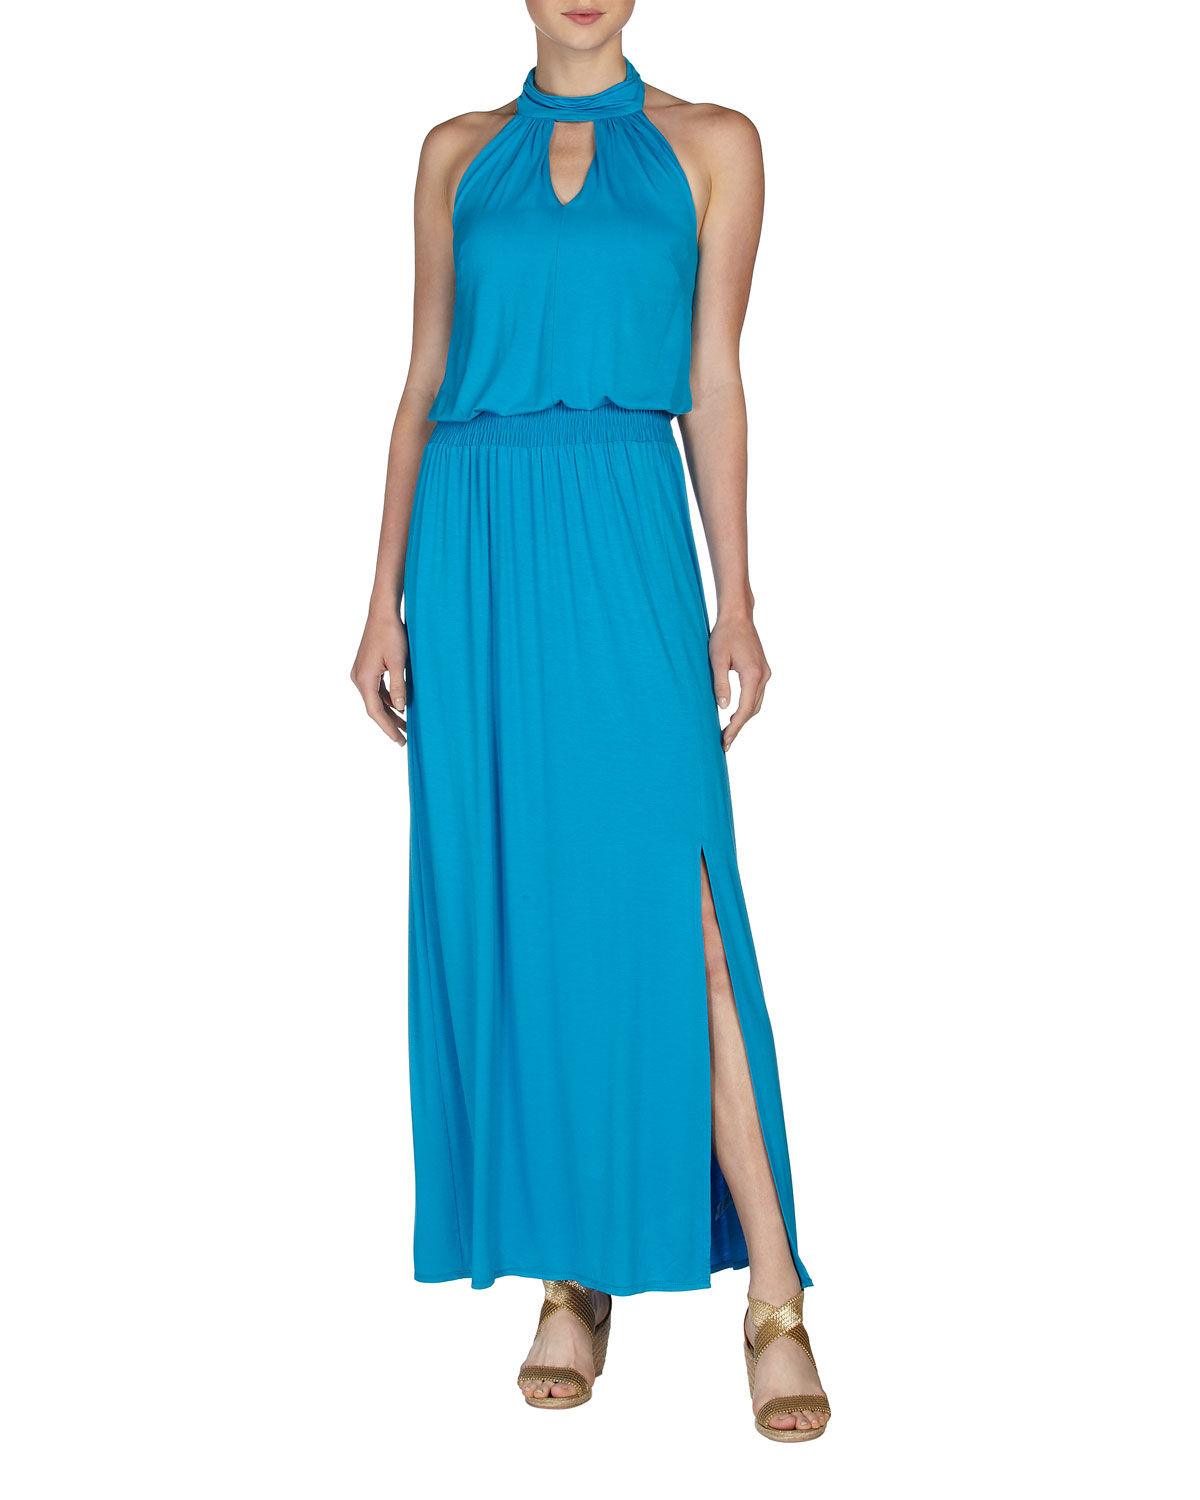 laundry by shelli segal lyst laundry by shelli segal halter maxi dress true blue 12096